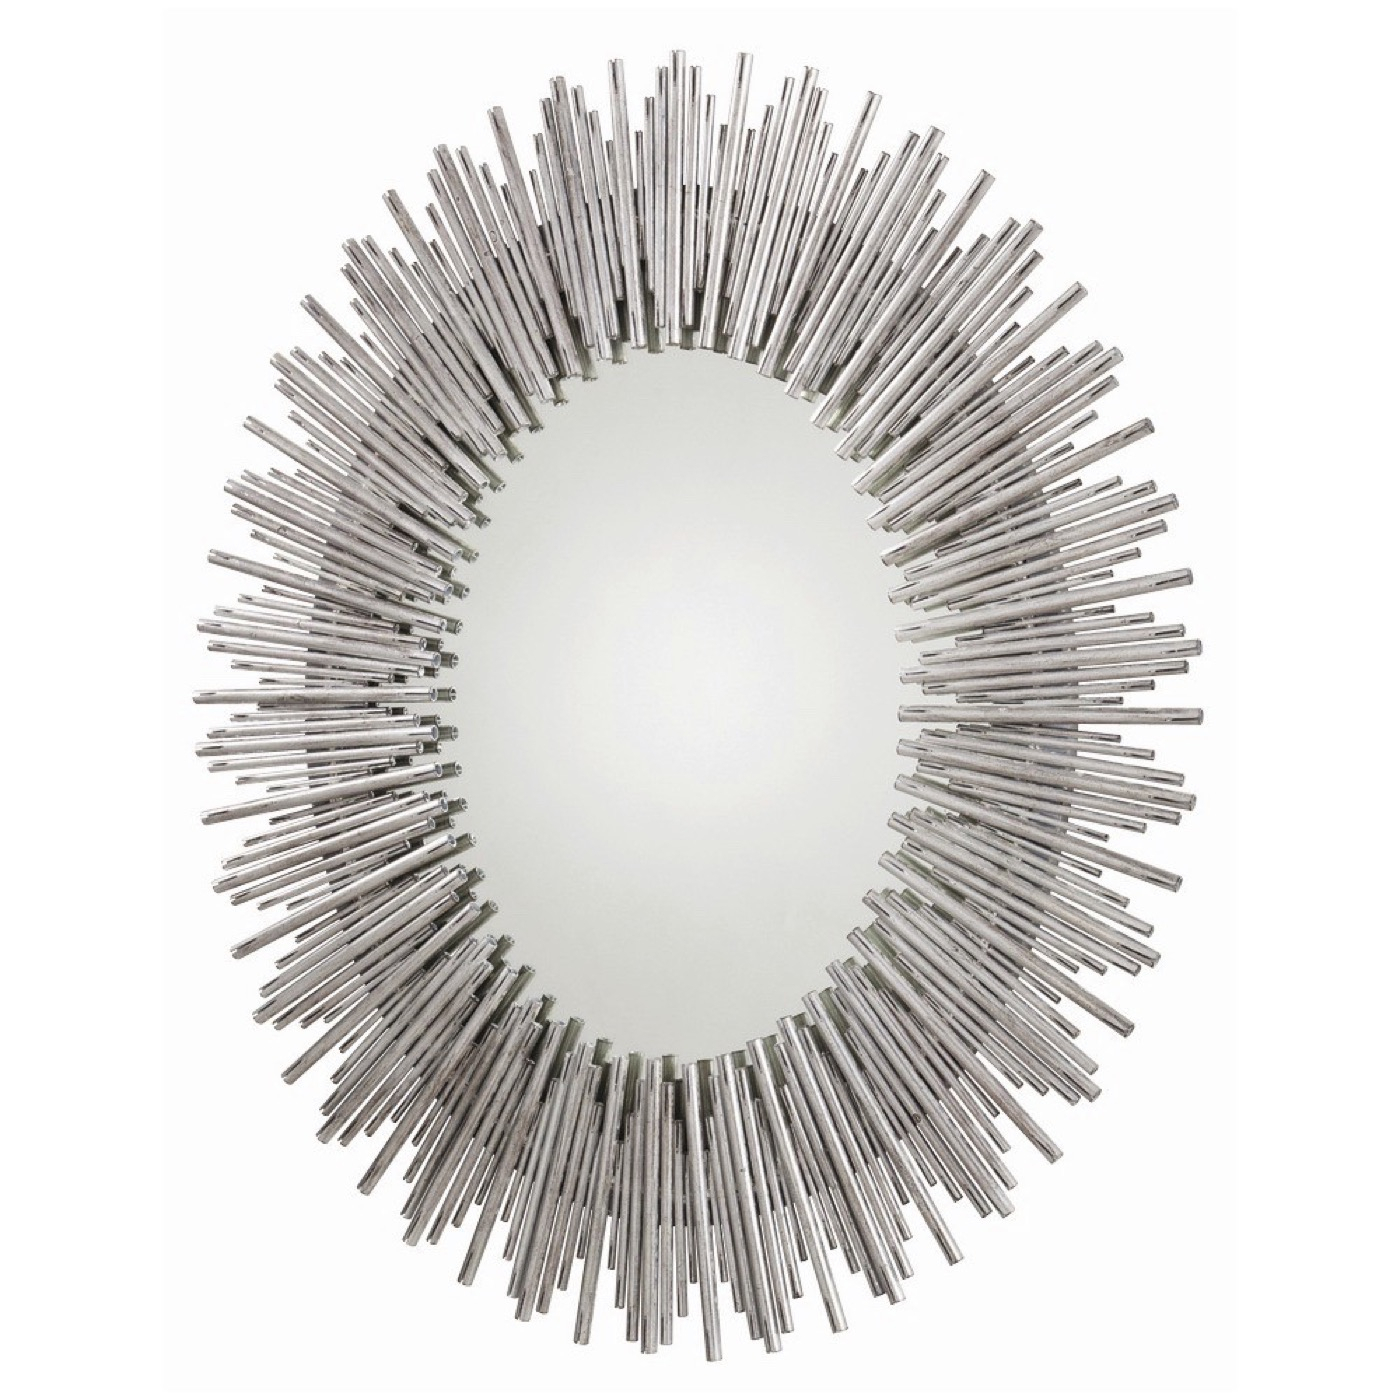 Kentwood Oval Wall Mirror | Silver In Kentwood Round Wall Mirrors (View 19 of 20)